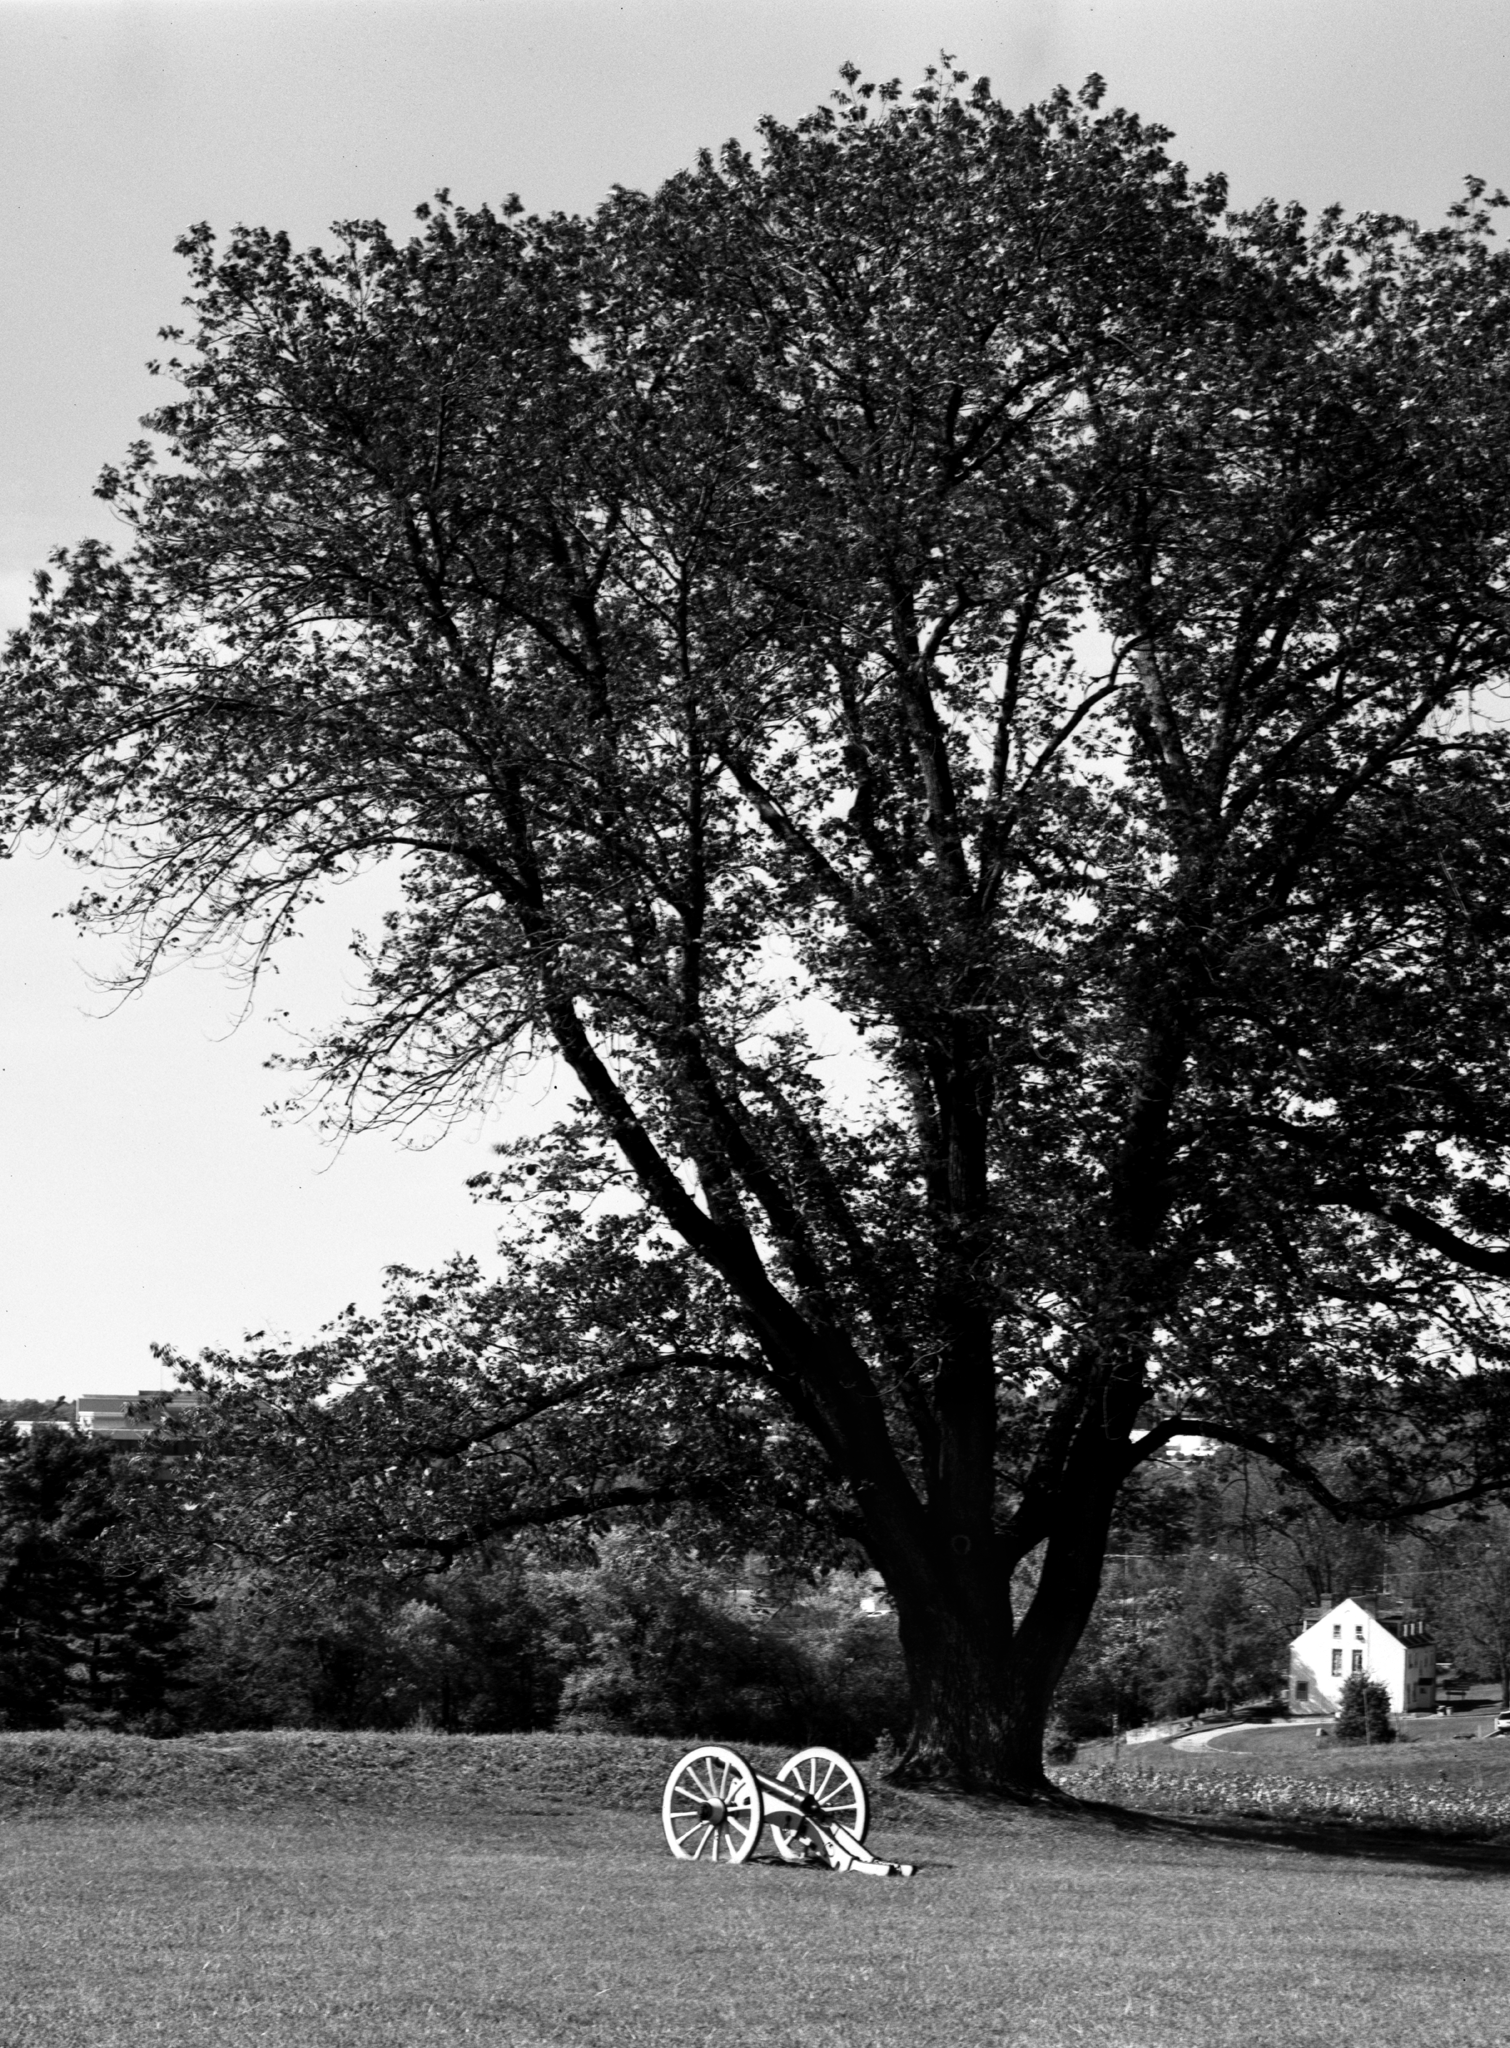 4x5_for_365_project_0284_Valley_Forge_Muhlenburg_Canon.png